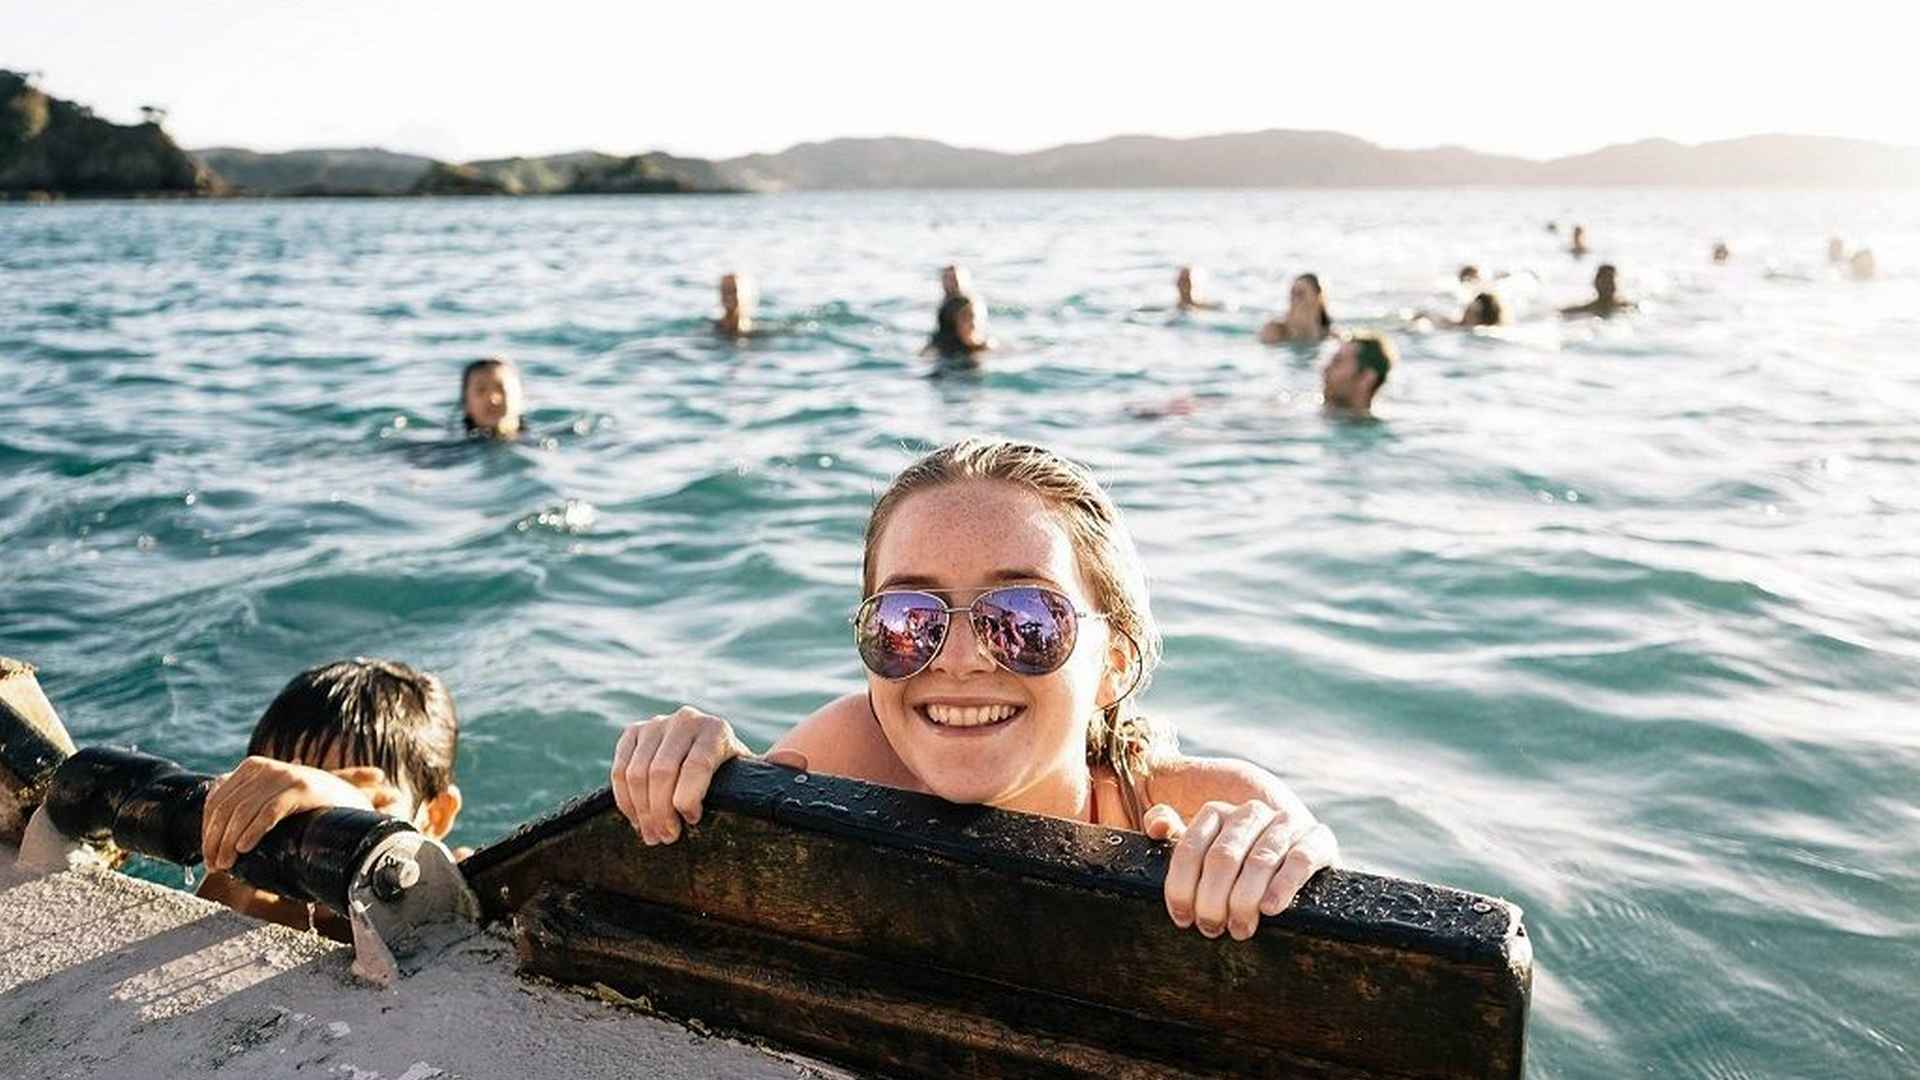 Enjoy a dip in the crystal clear waters of the Bay of Islands aboard The Rock